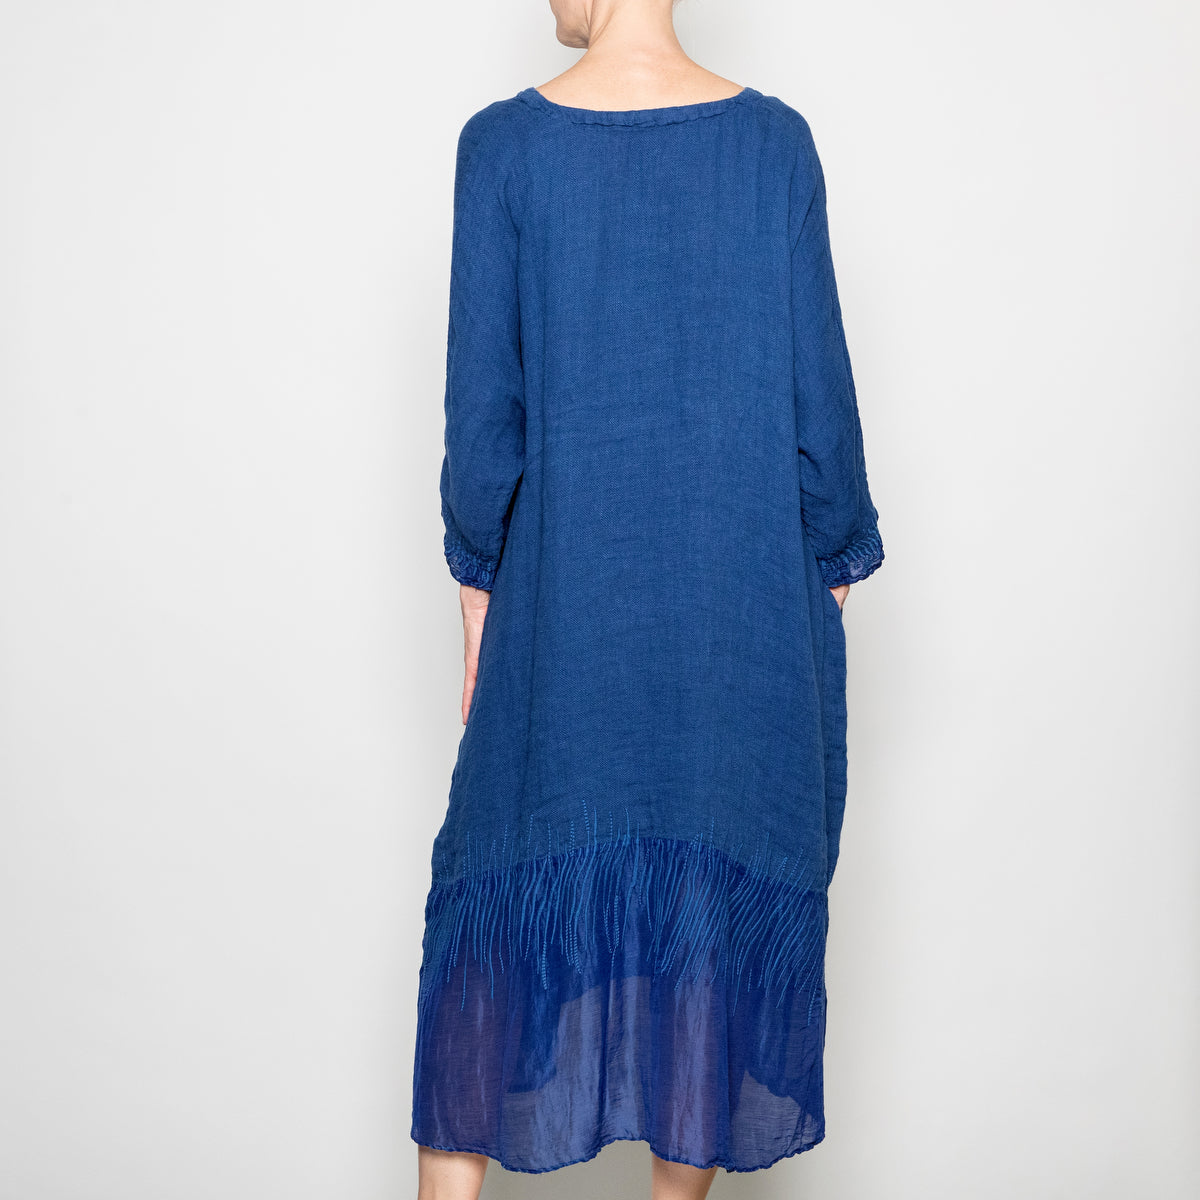 Peacock Ways Annabelle Dress in Navy